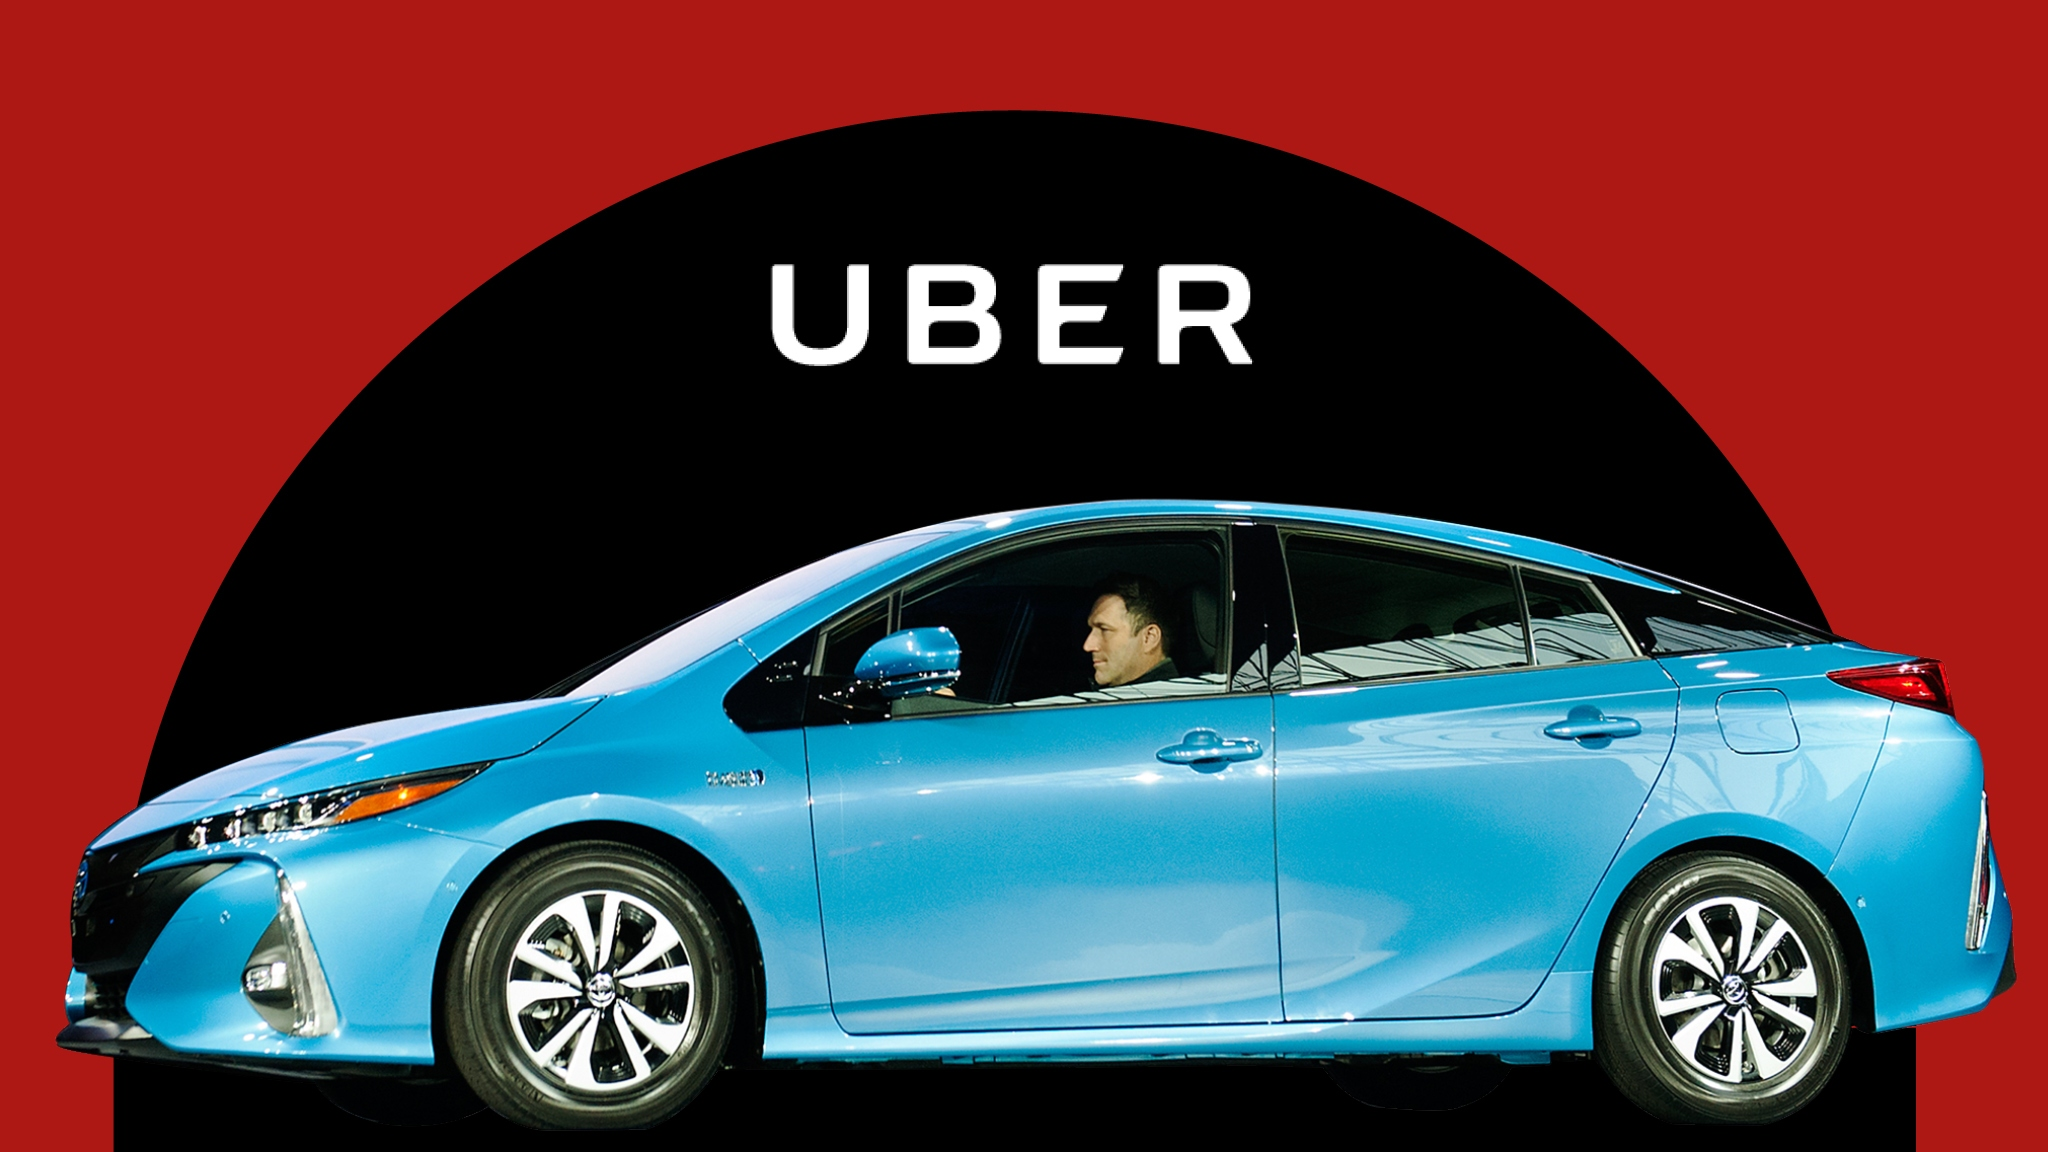 Uber hitches a ride with car finance schemes | Financial Times